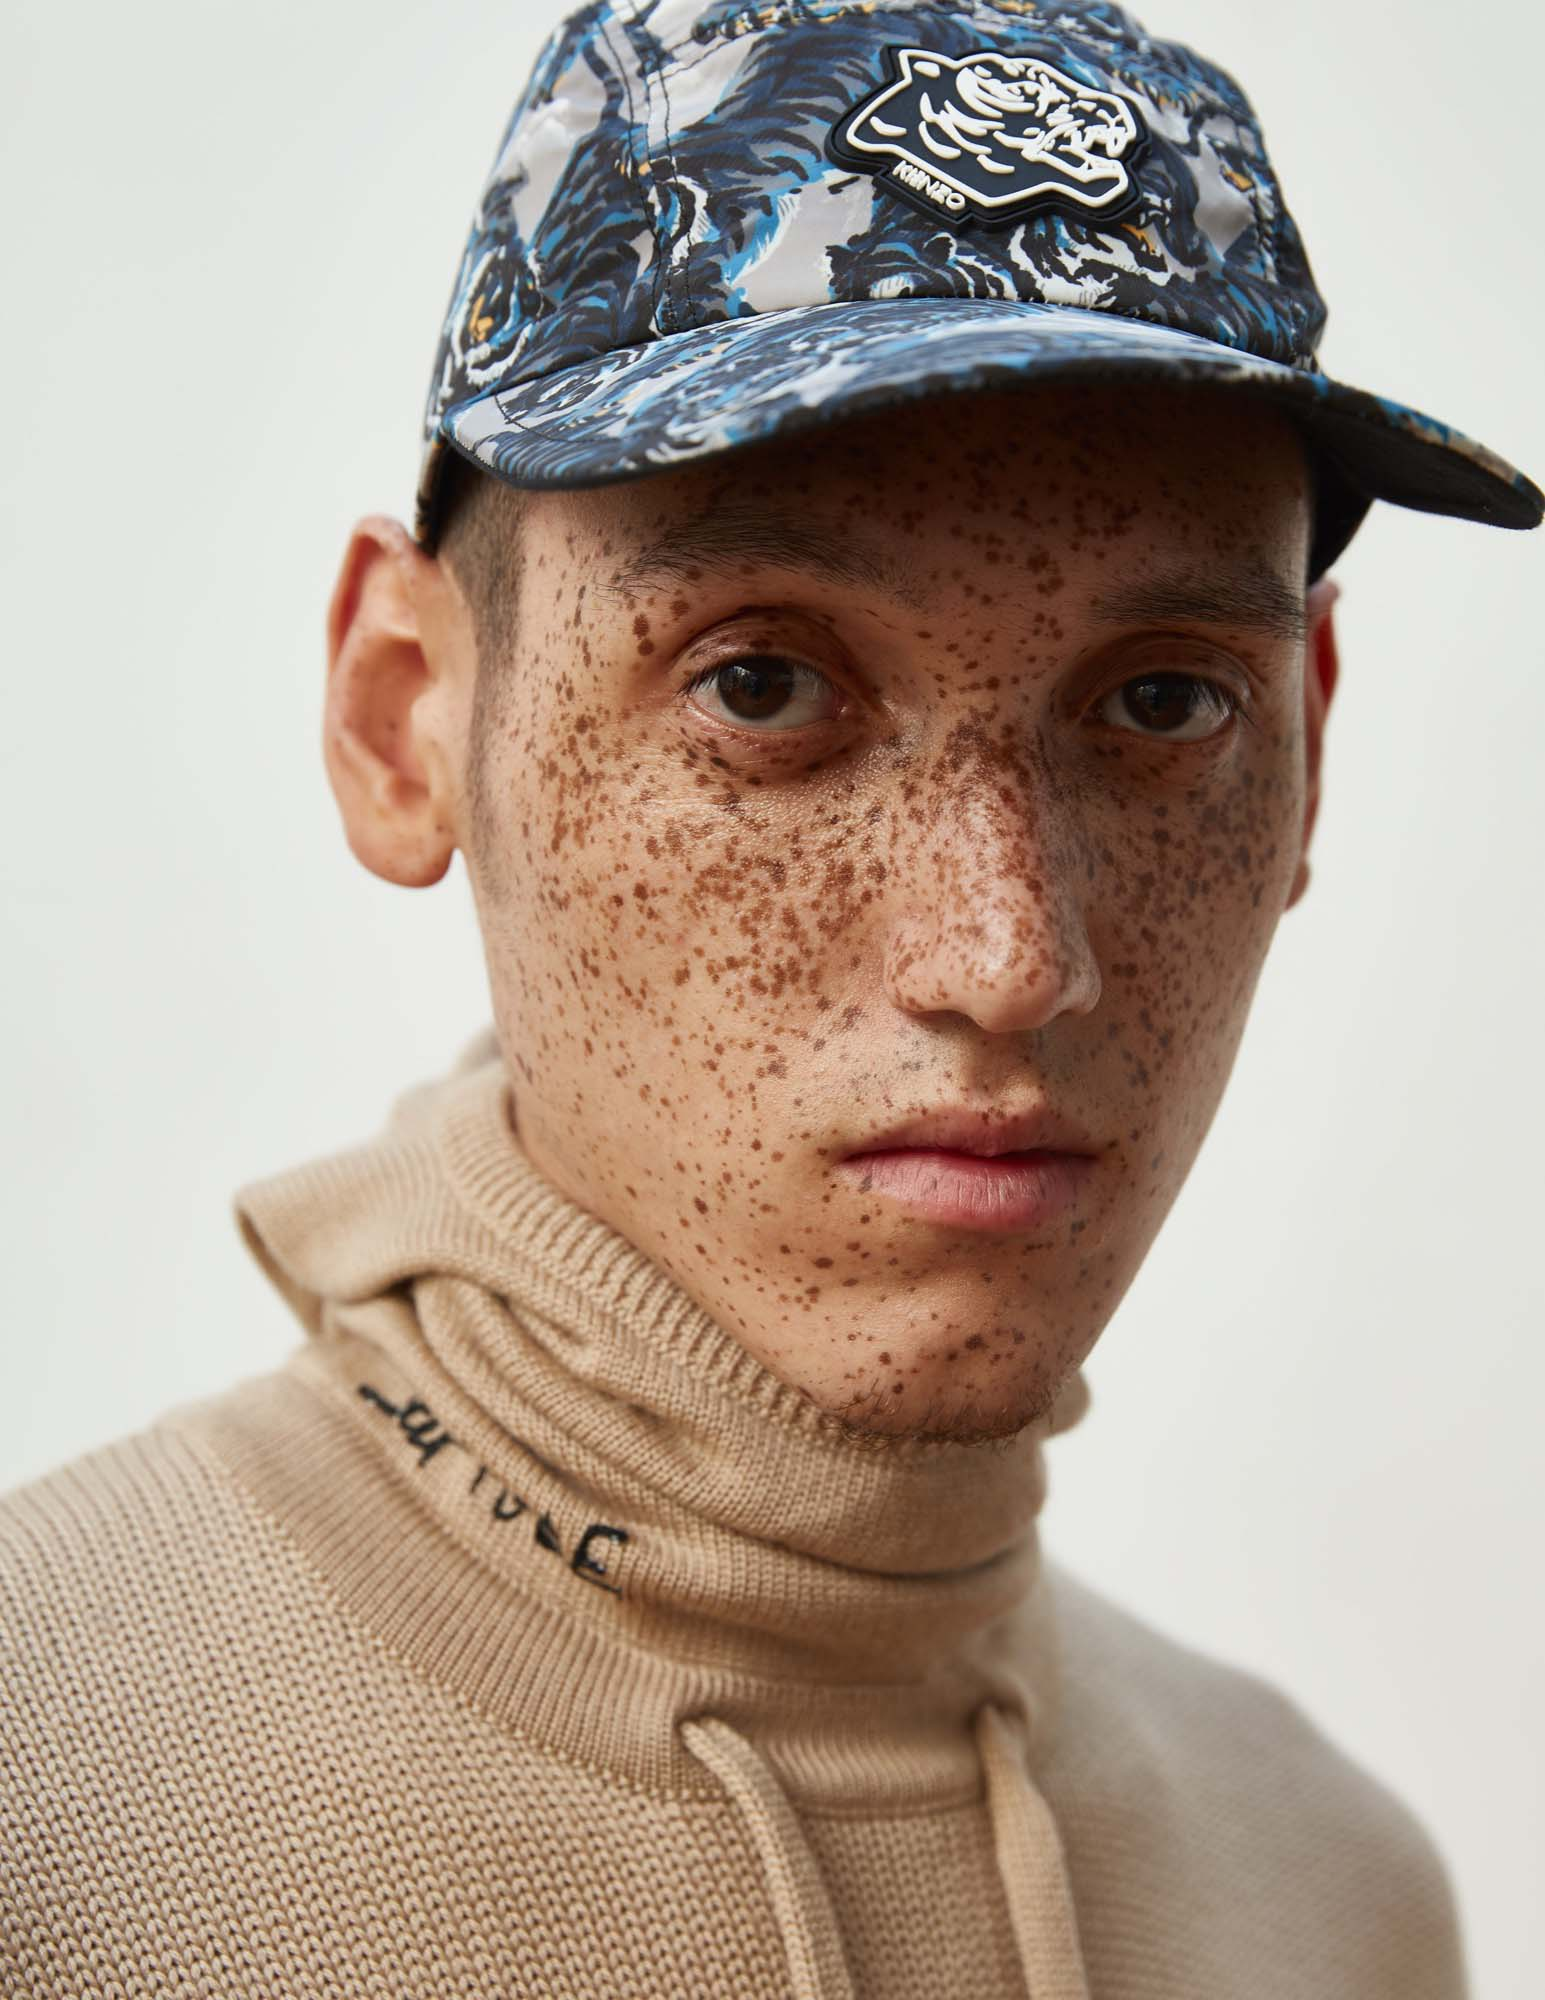 Jordan British Youth by Rama Lee for Schon